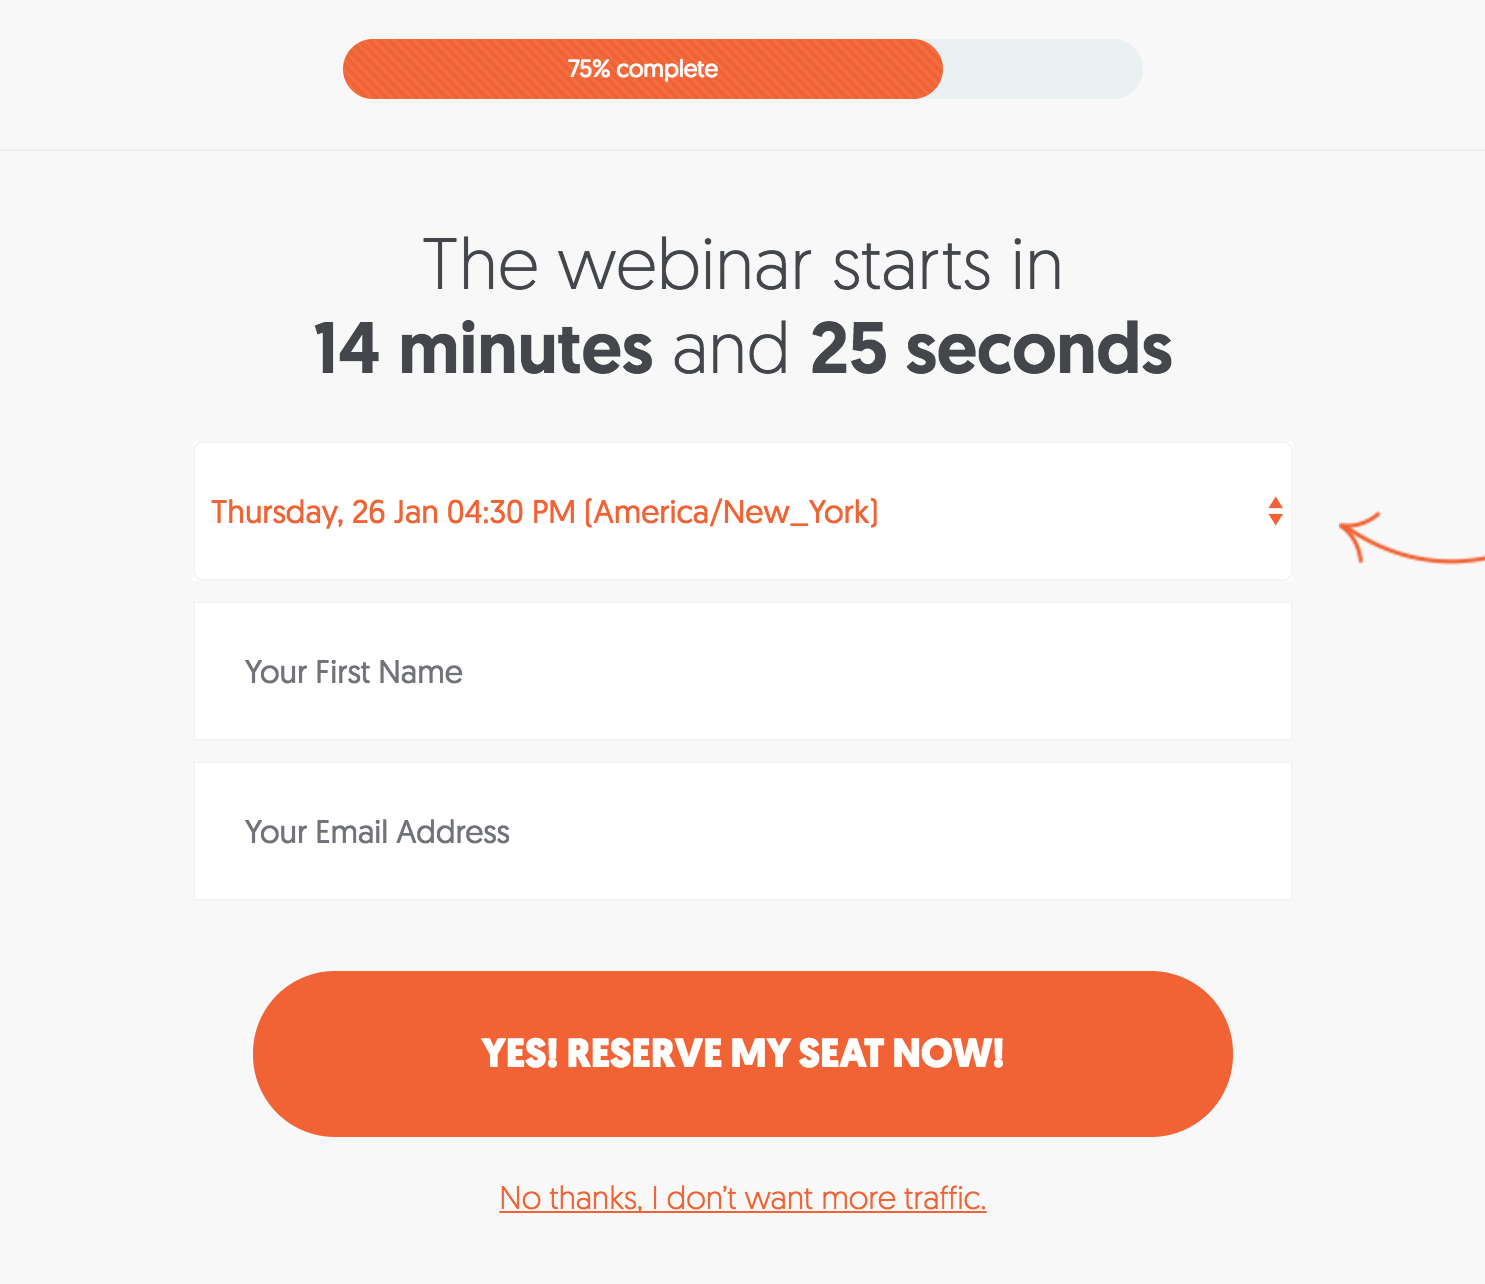 Educate customers with webinars